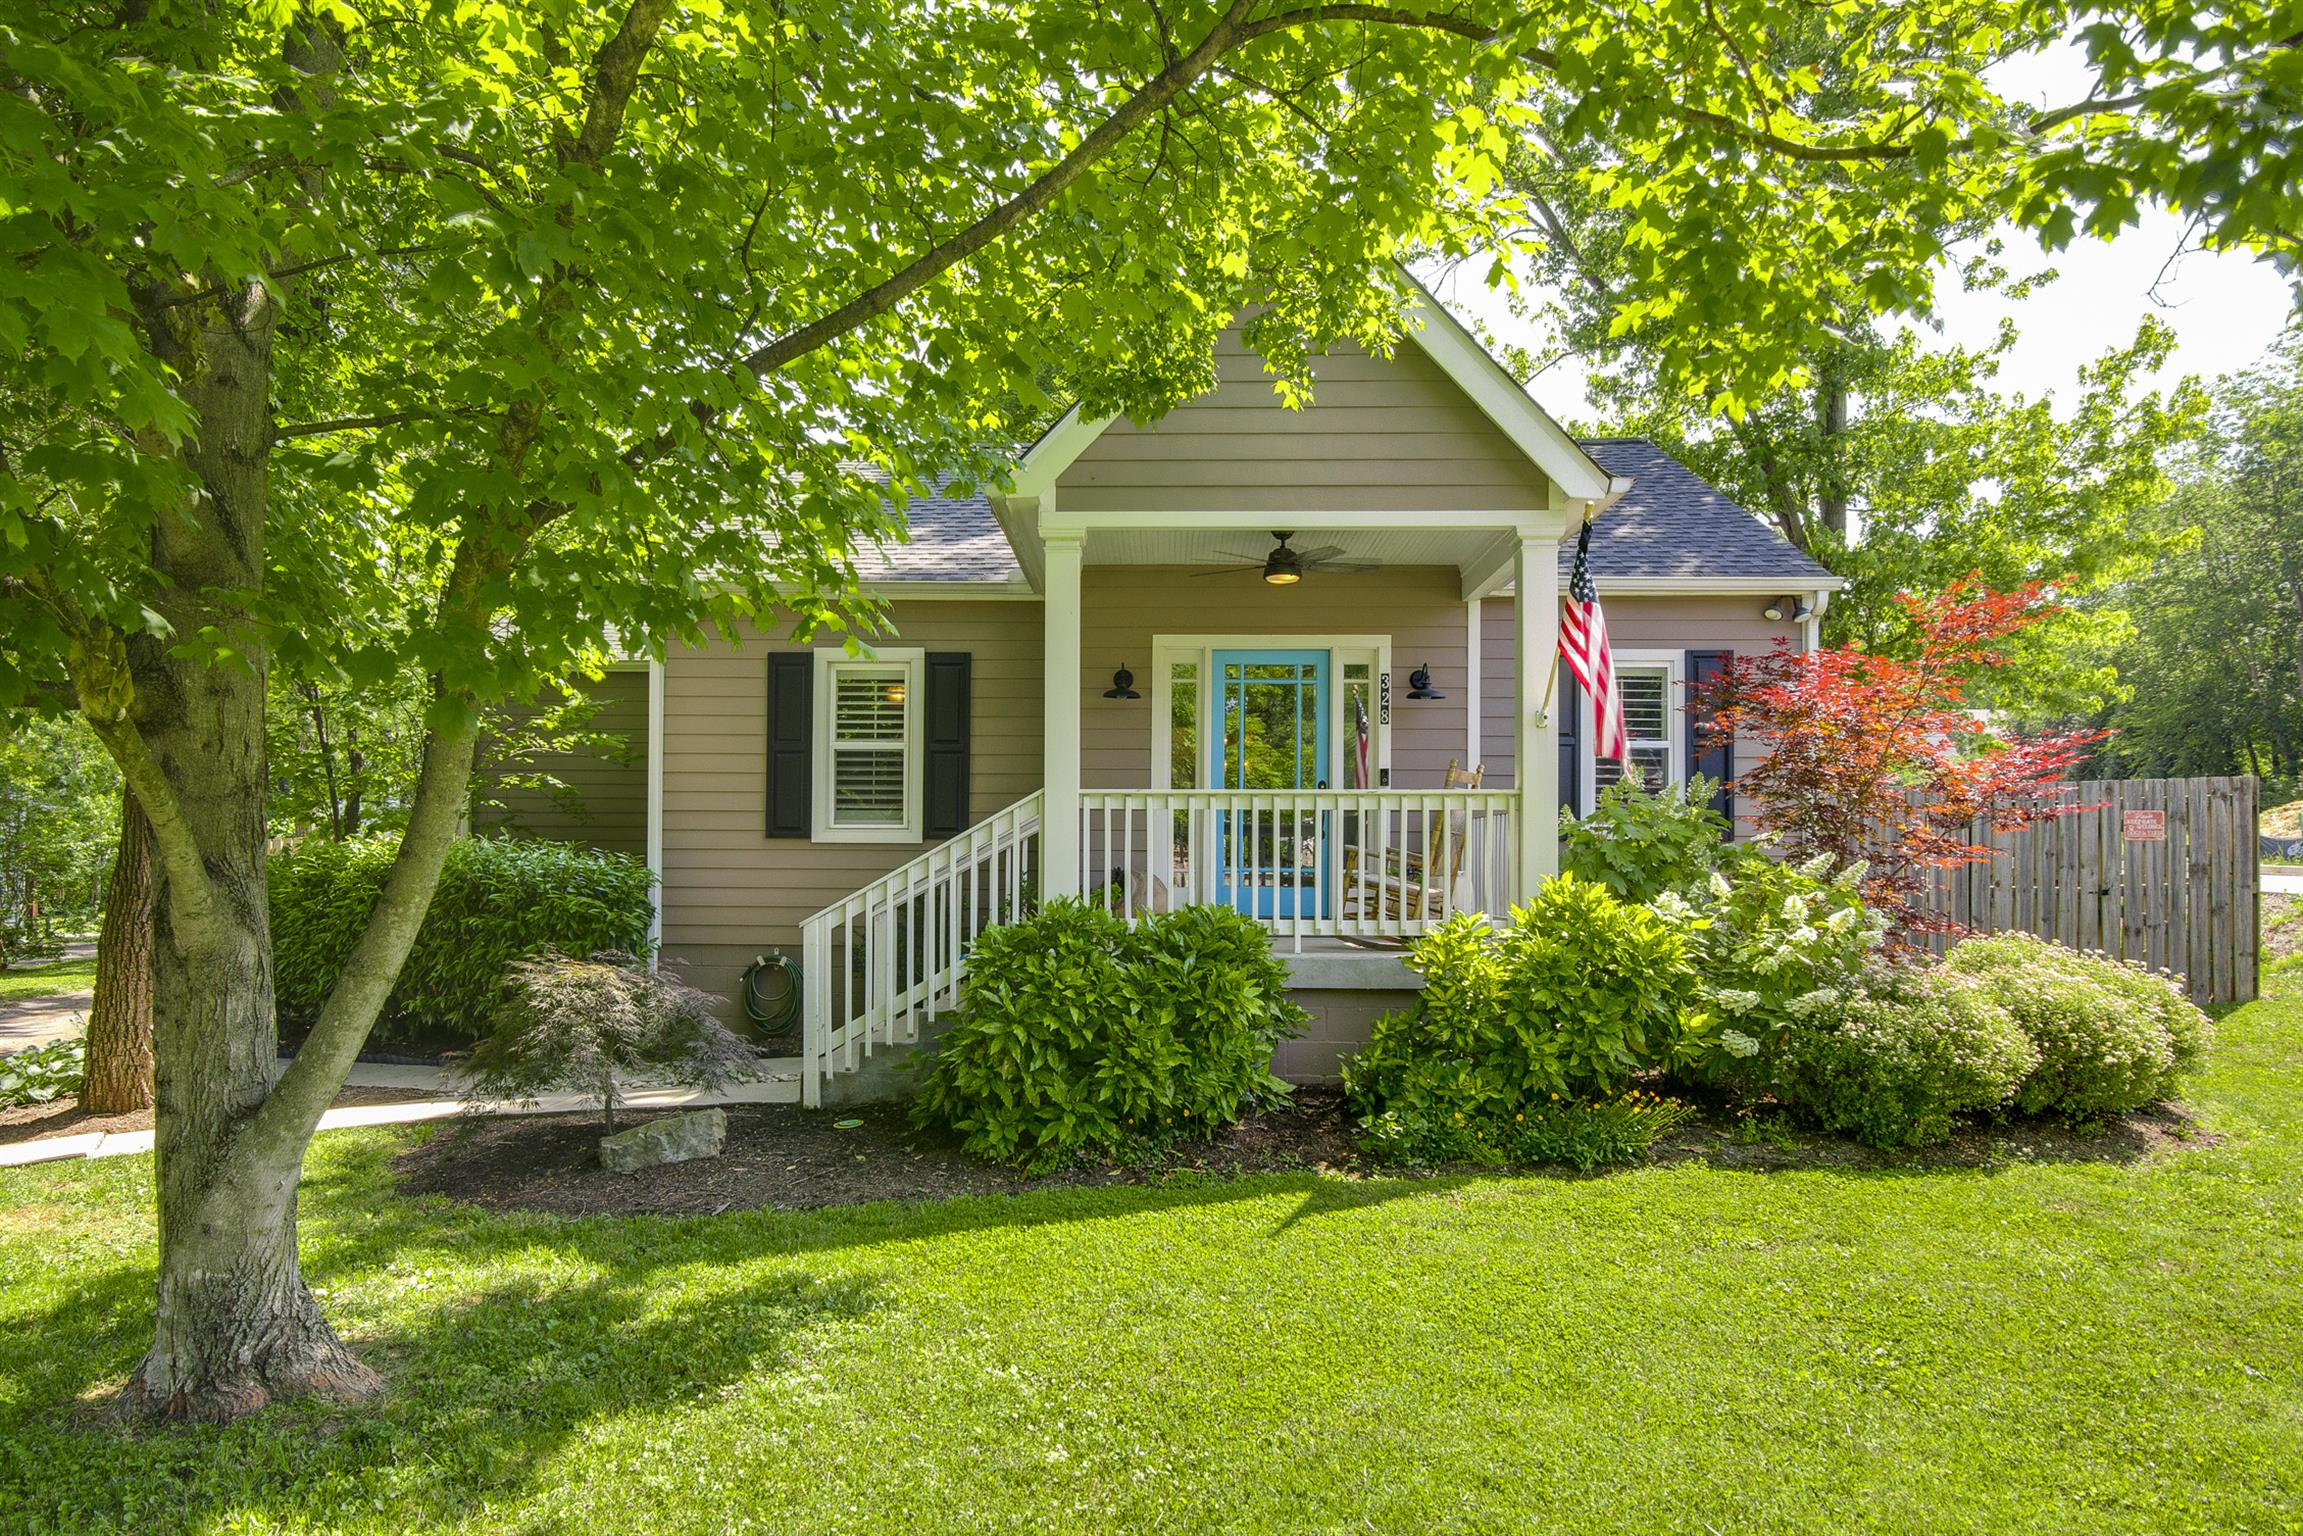 328 11Th Ave N, Franklin, TN 37064 - Franklin, TN real estate listing